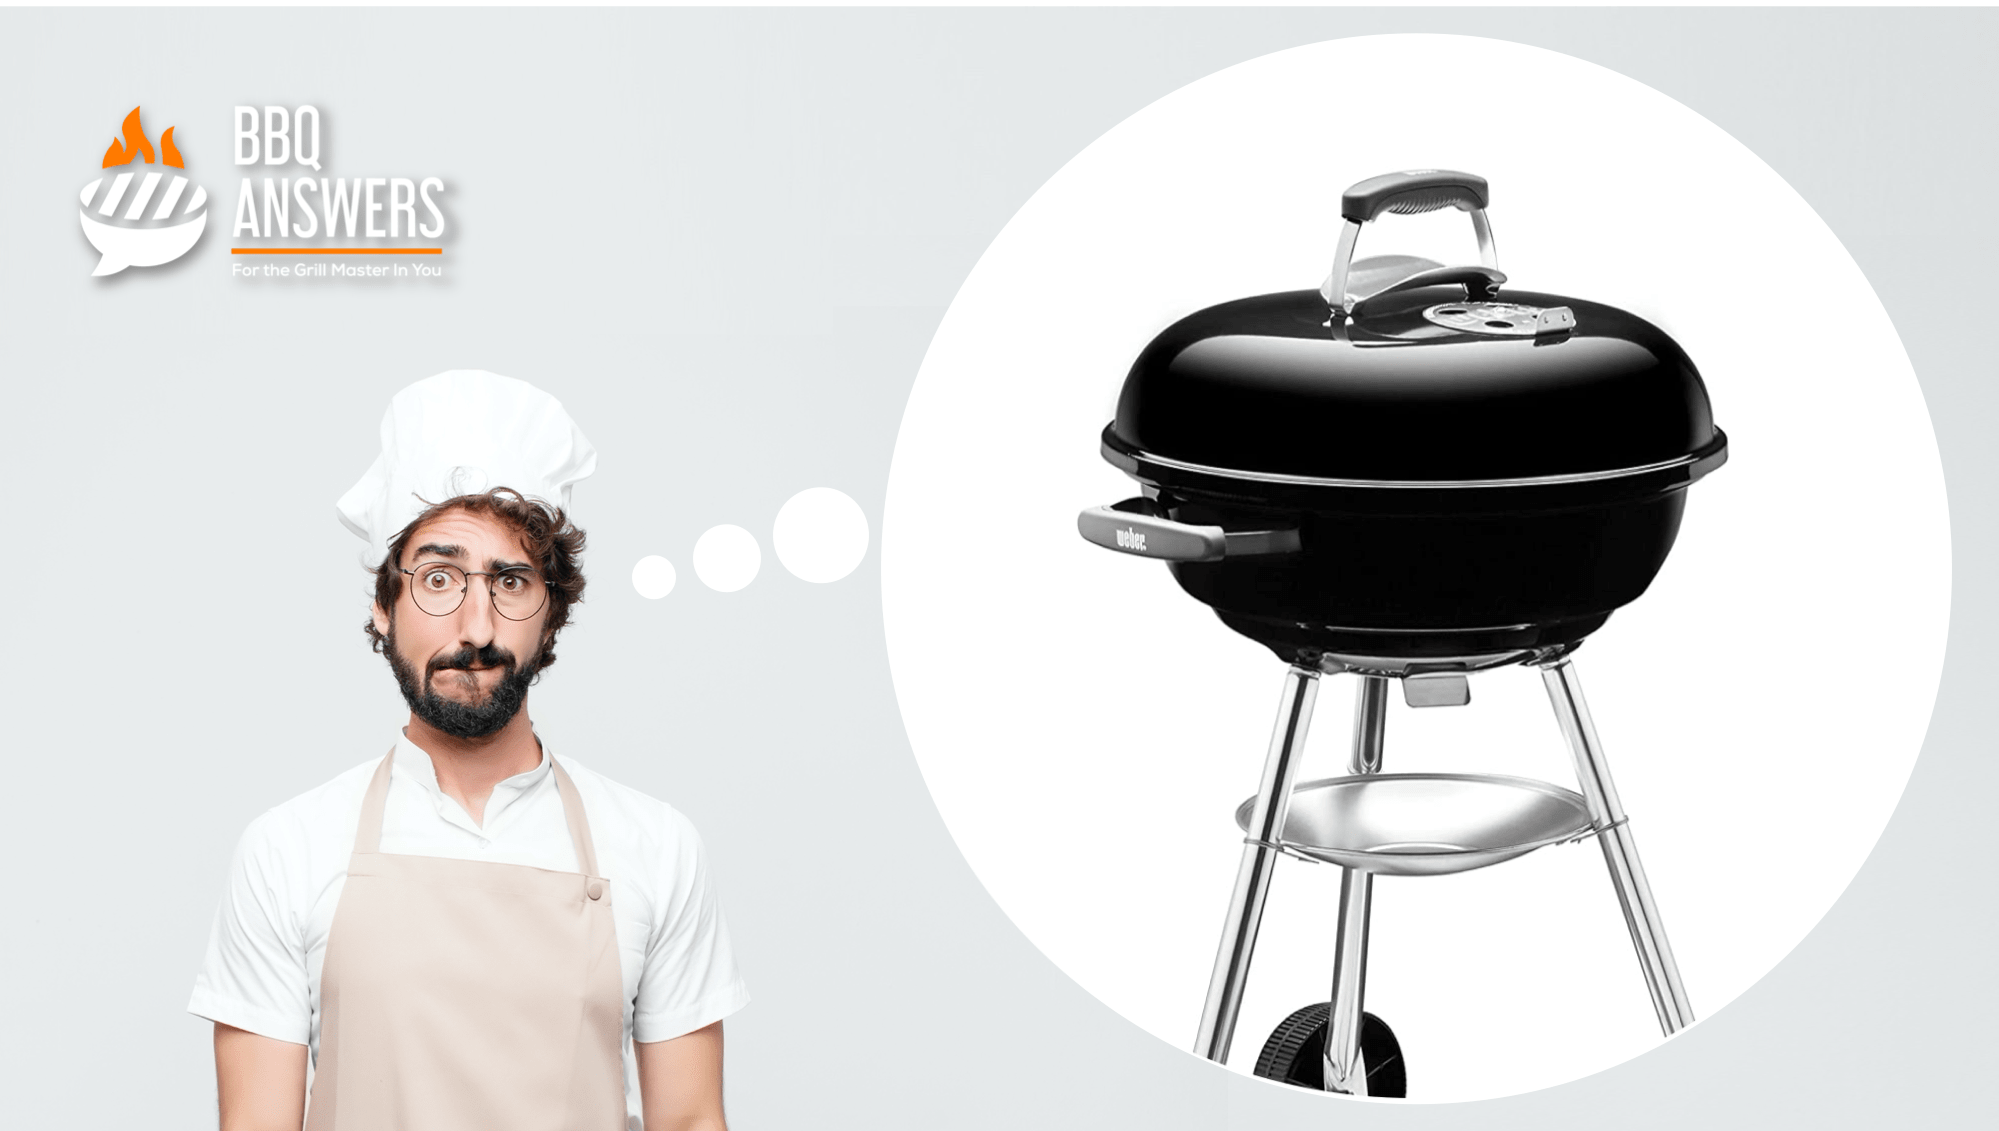 Misconceptions About Charcoal Grill | BBQanswers